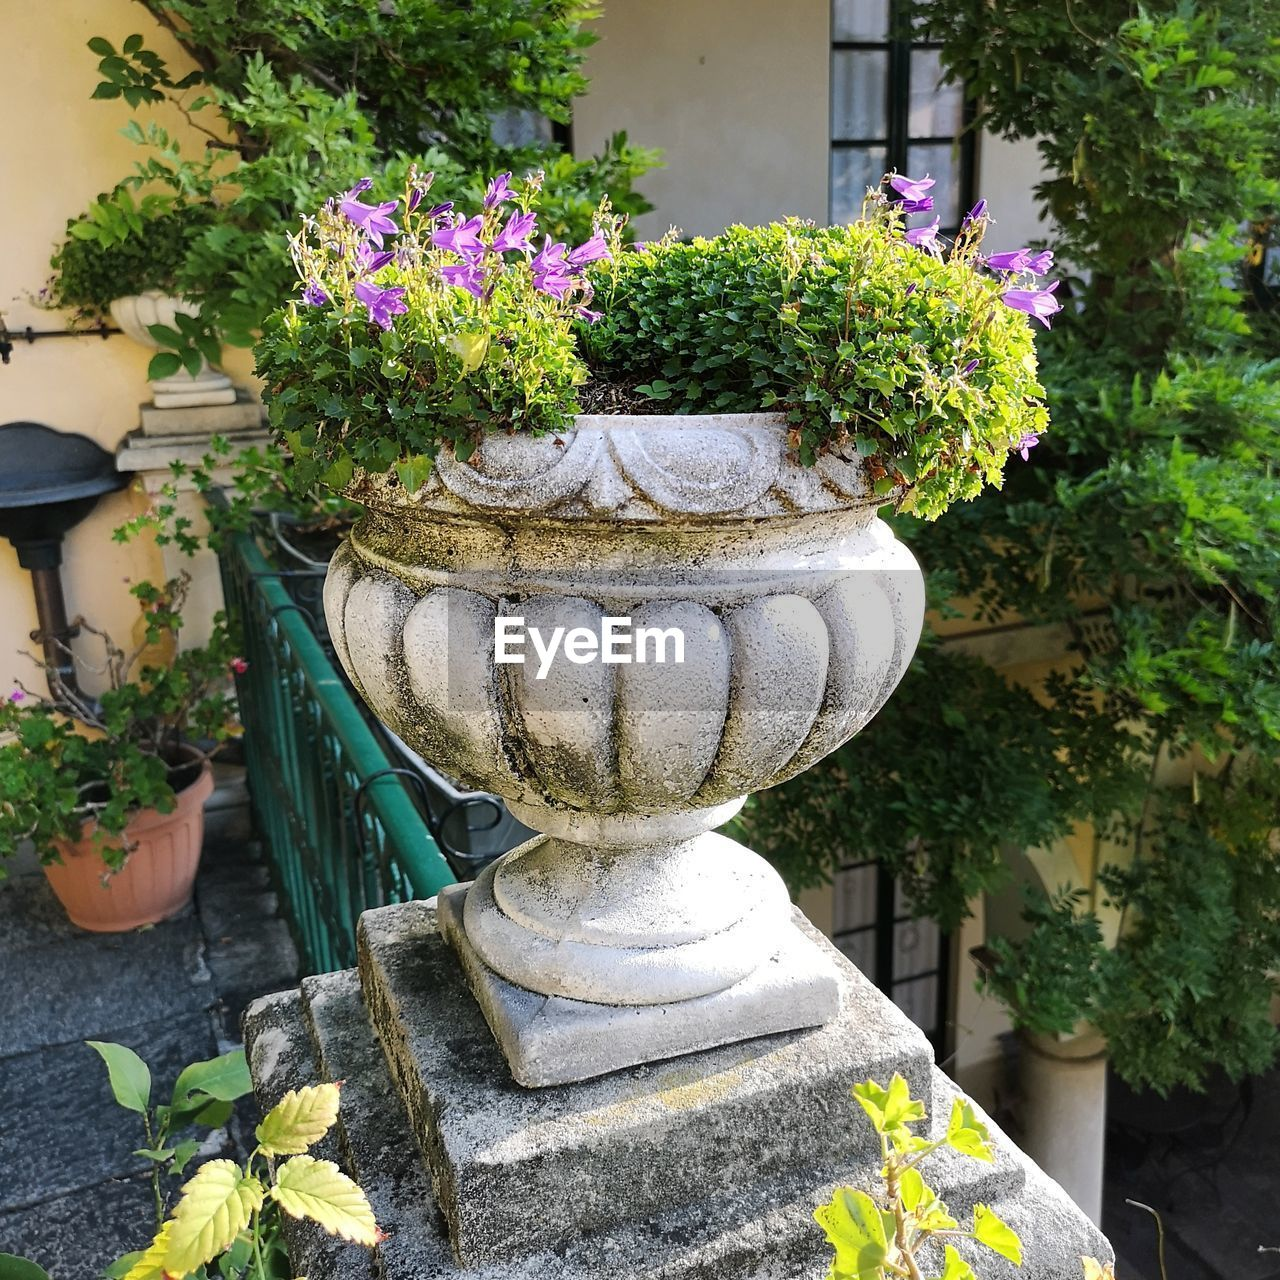 plant, flower, flowering plant, potted plant, nature, growth, day, no people, beauty in nature, garden, outdoors, formal garden, front or back yard, solid, fragility, vulnerability, close-up, green color, architecture, plant part, flower pot